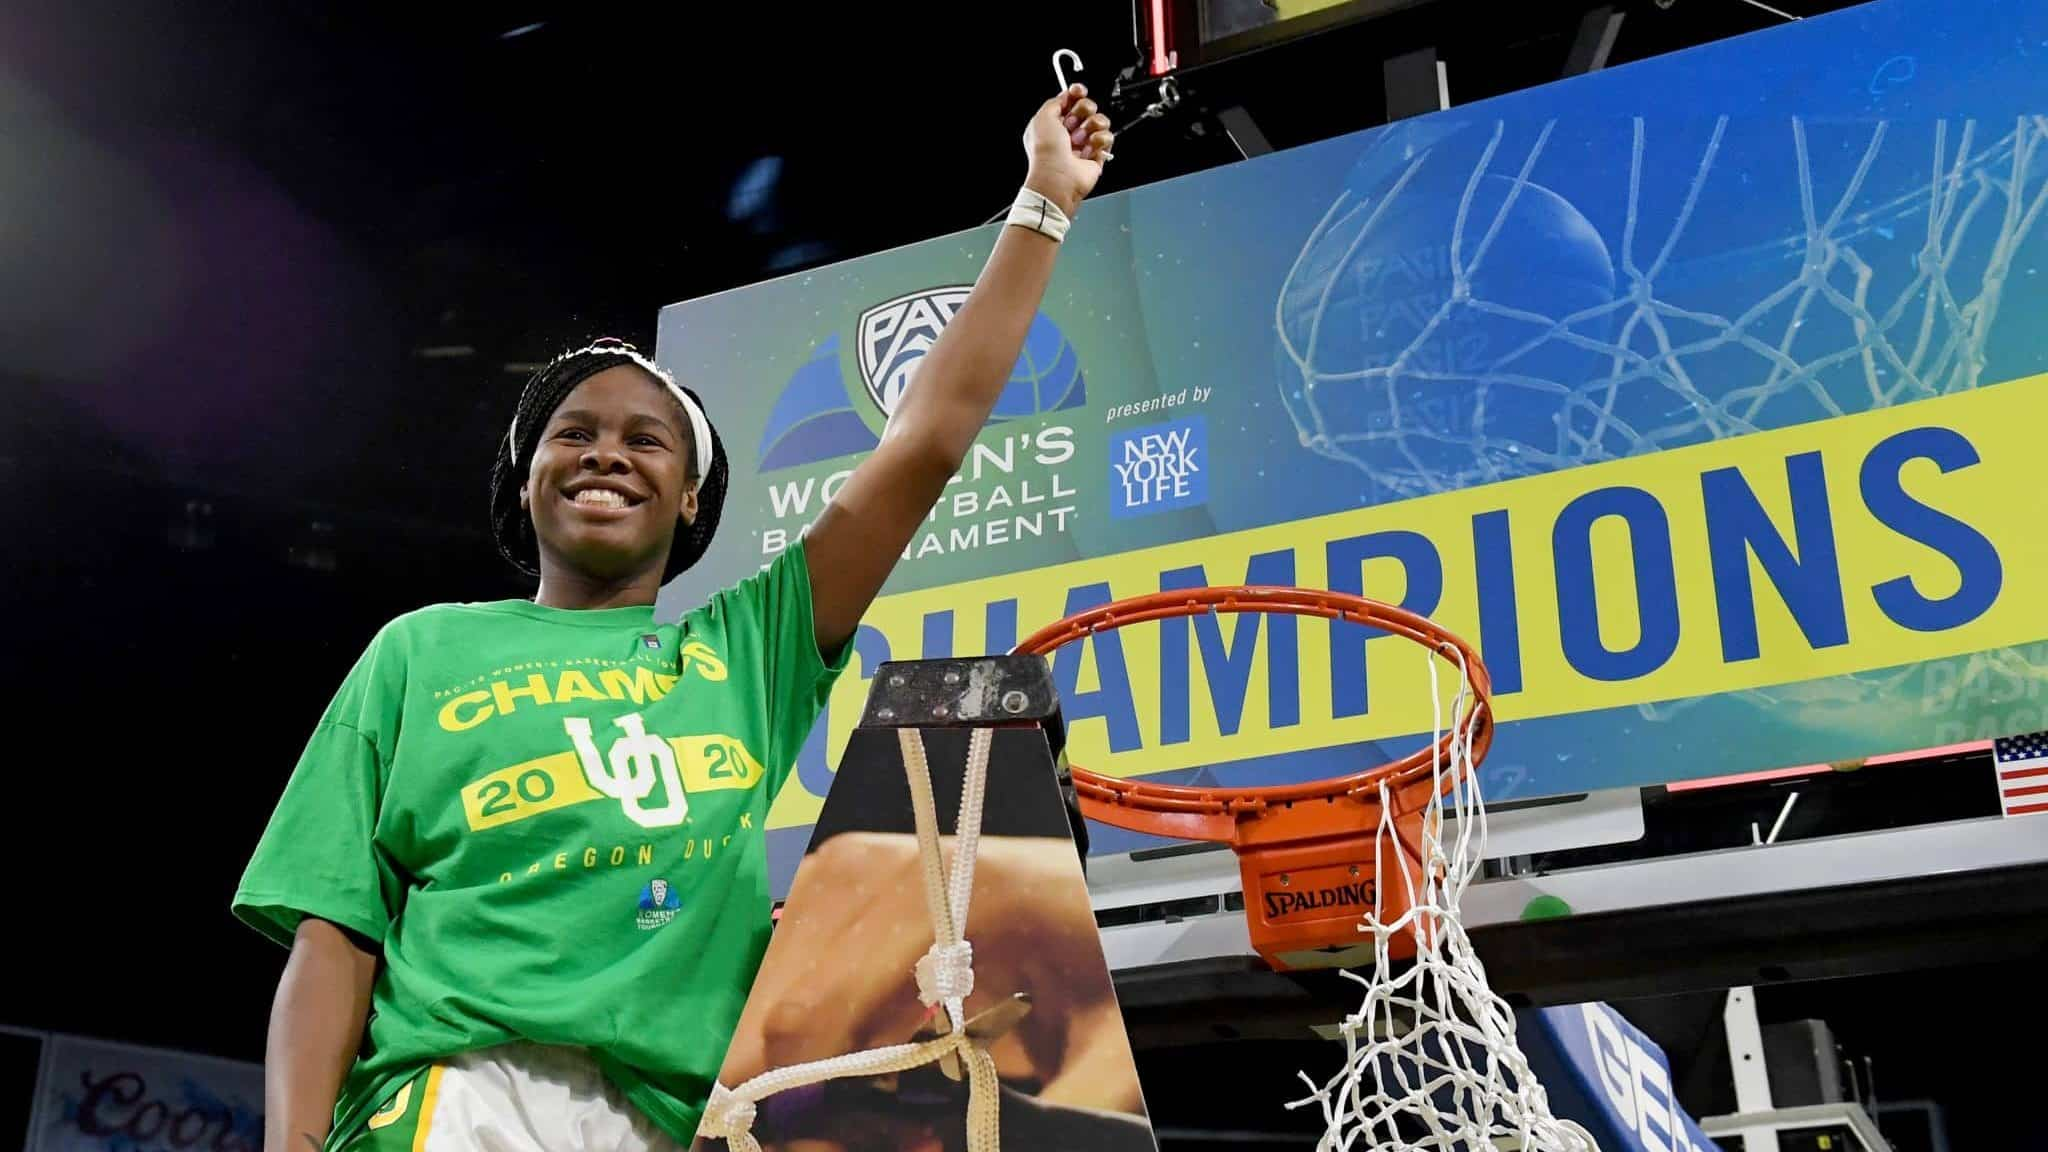 LAS VEGAS, NEVADA - MARCH 08: Ruthy Hebard #24 of the Oregon Ducks cuts down a net after the team defeated the Stanford Cardinal 89-56 to win the championship game of the Pac-12 Conference women's basketball tournament at the Mandalay Bay Events Center on March 8, 2020 in Las Vegas, Nevada. (